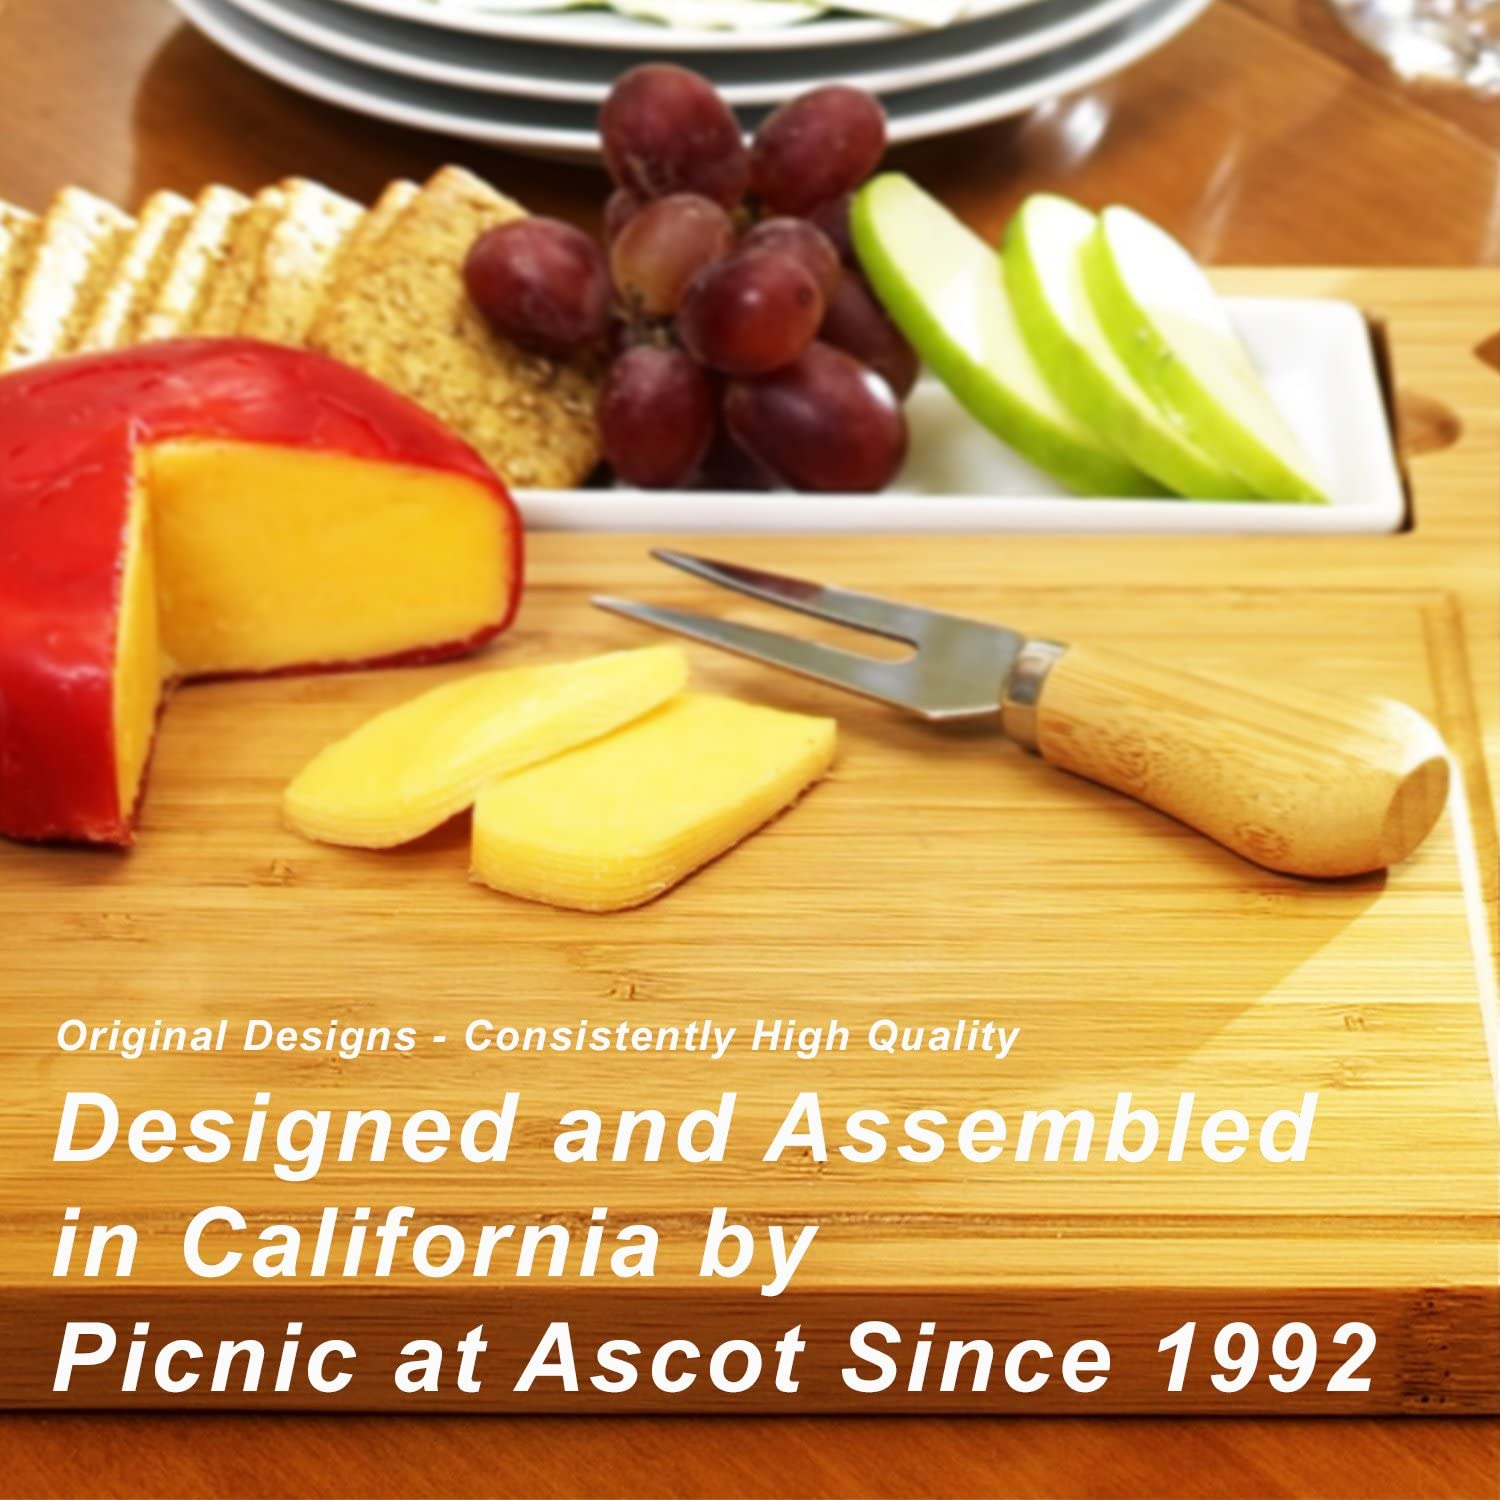 includes Knives Cheese Markers /& Ceramic Dish Picnic at Ascot Personalized Monogrammed Engraved Hardwood Cutting Board for Cheese /& Charcuterie Designed and quality Checked in the USA